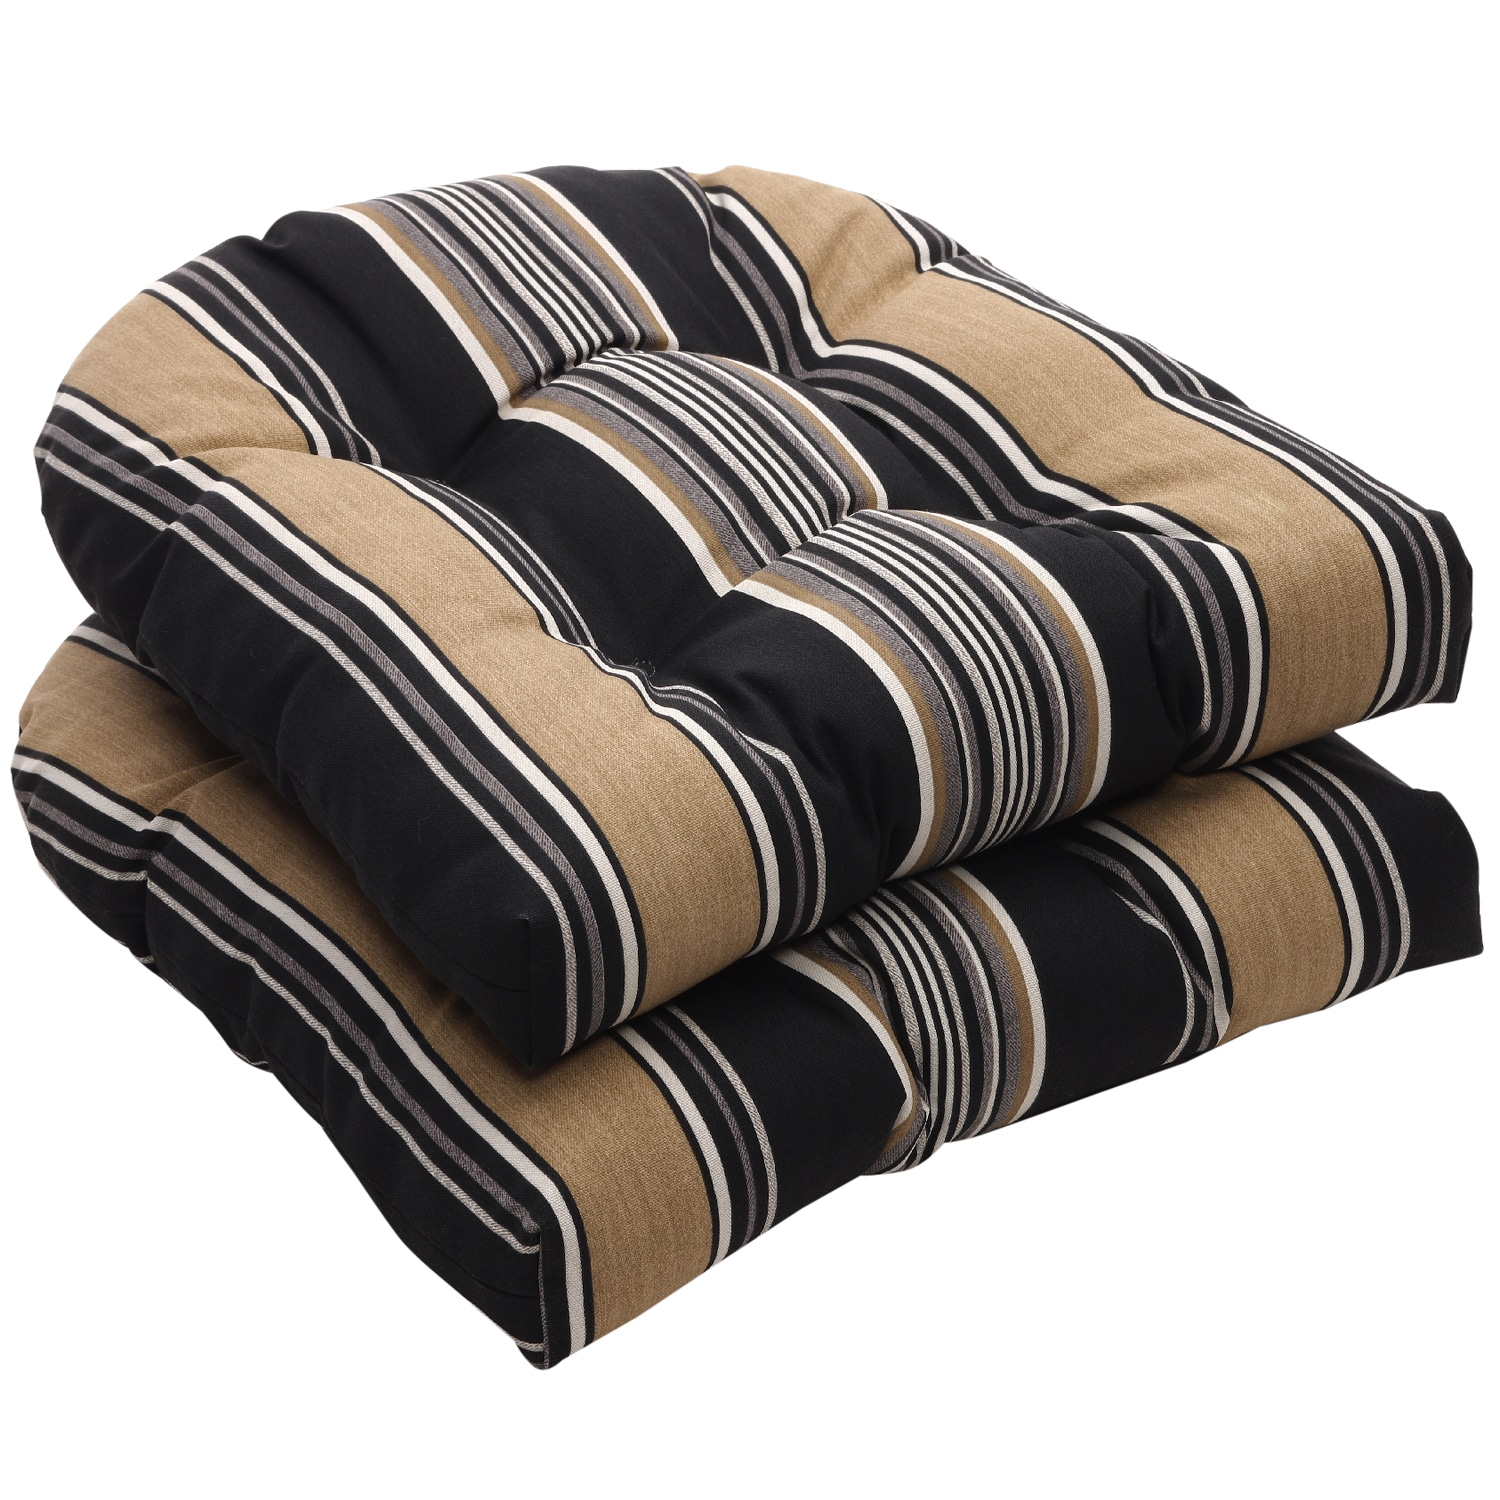 Outdoor Black and Tan Stripe Wicker Seat Cushions Set of